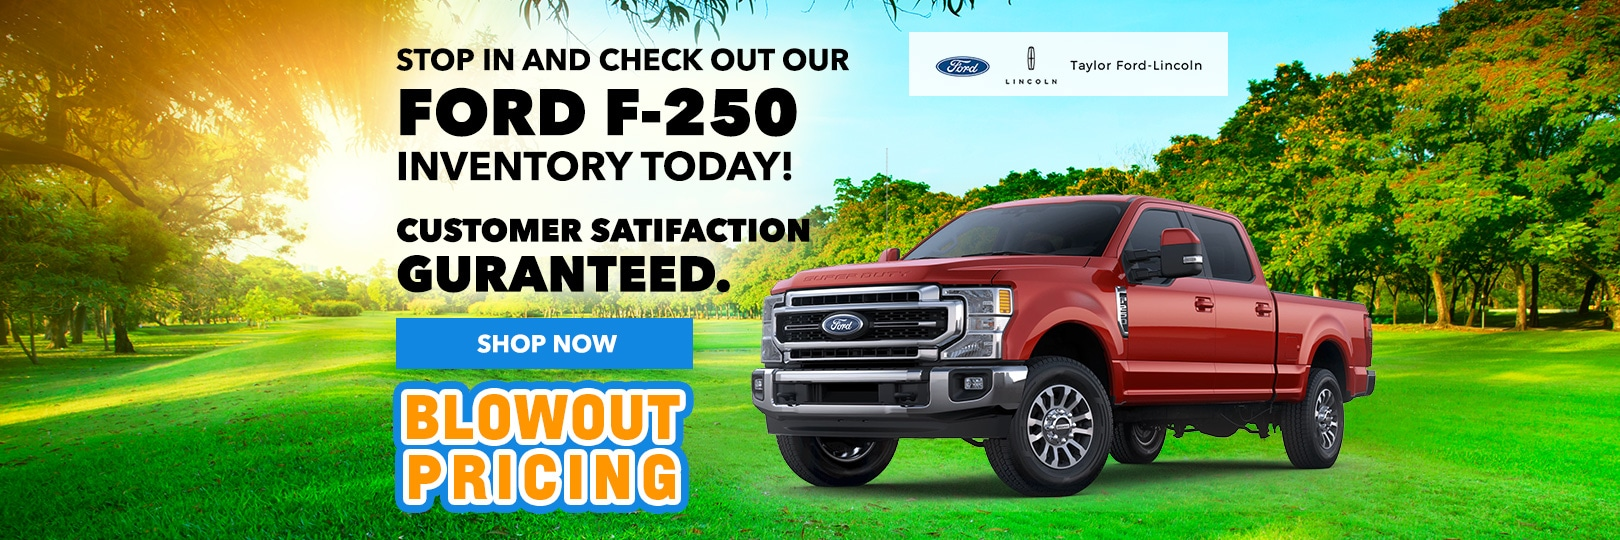 Shop Ford F-250 Inventory